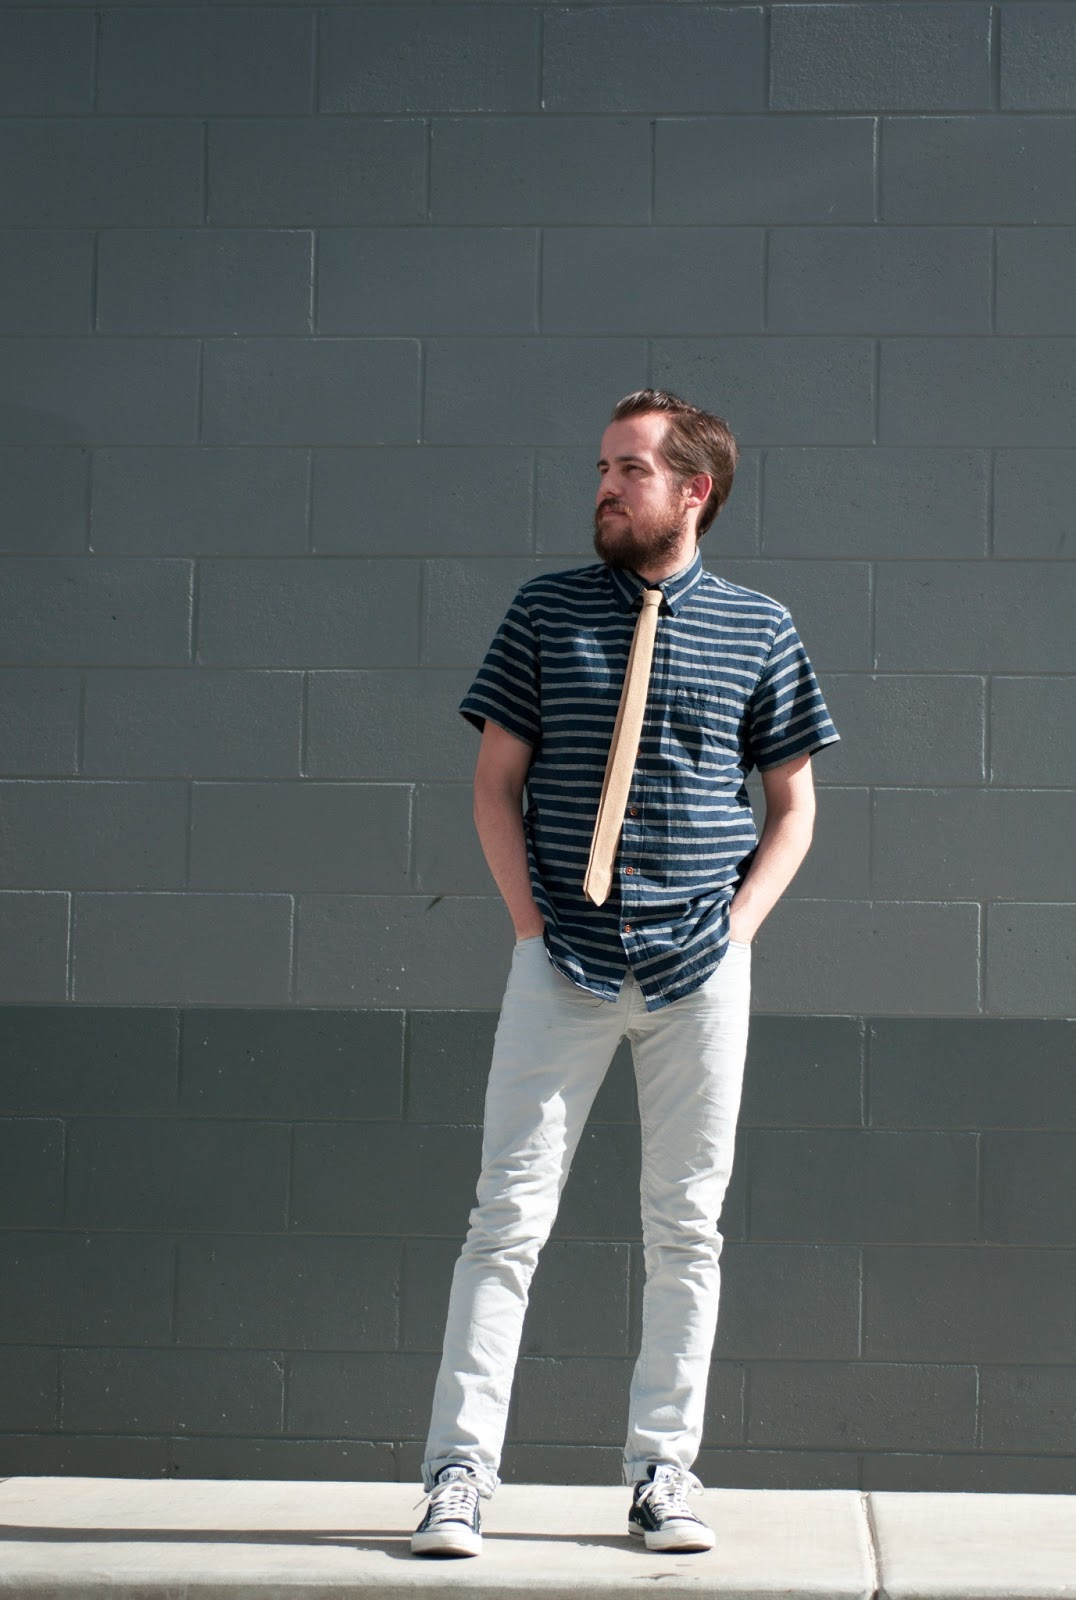 mens style blog, mens fashion blog, all saints, jcrew, ootd, skinny tie, ootd